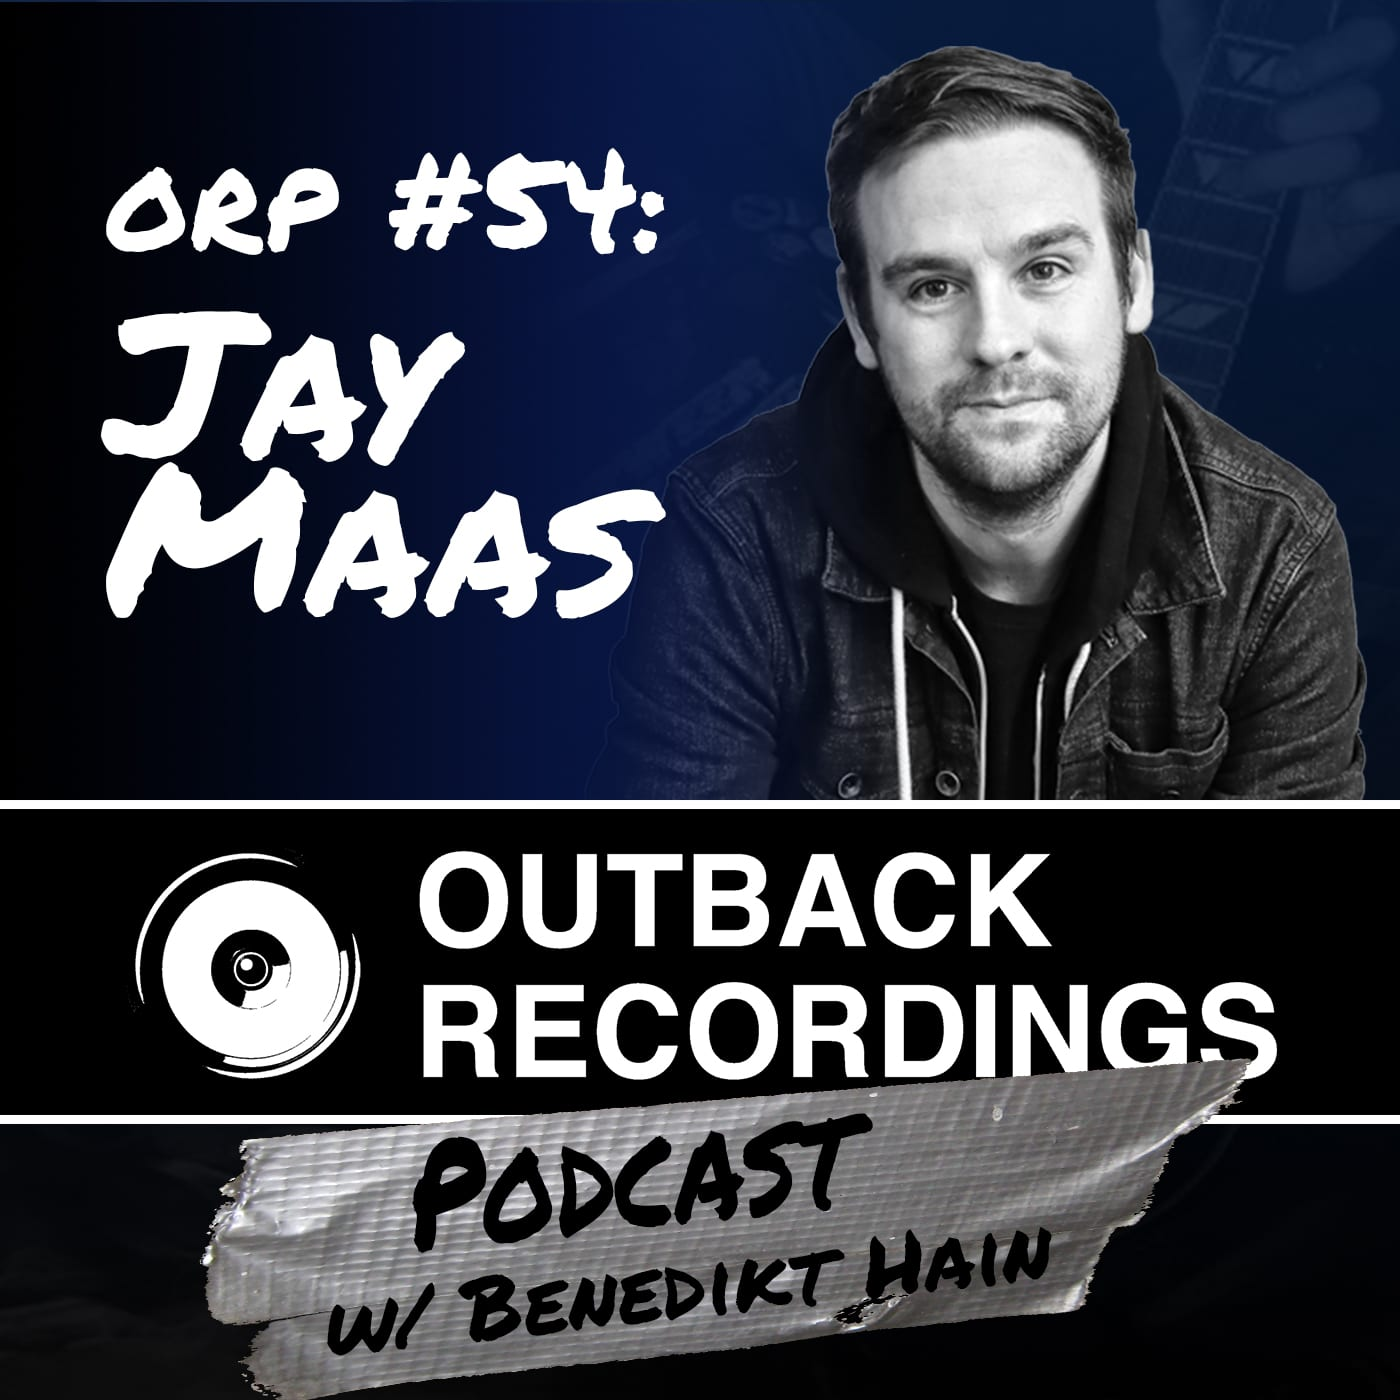 Podcast – ORP Session #54: Jay Maas (Producer/Mixer, Maastr.io, Defeater, Death Of A Nation)